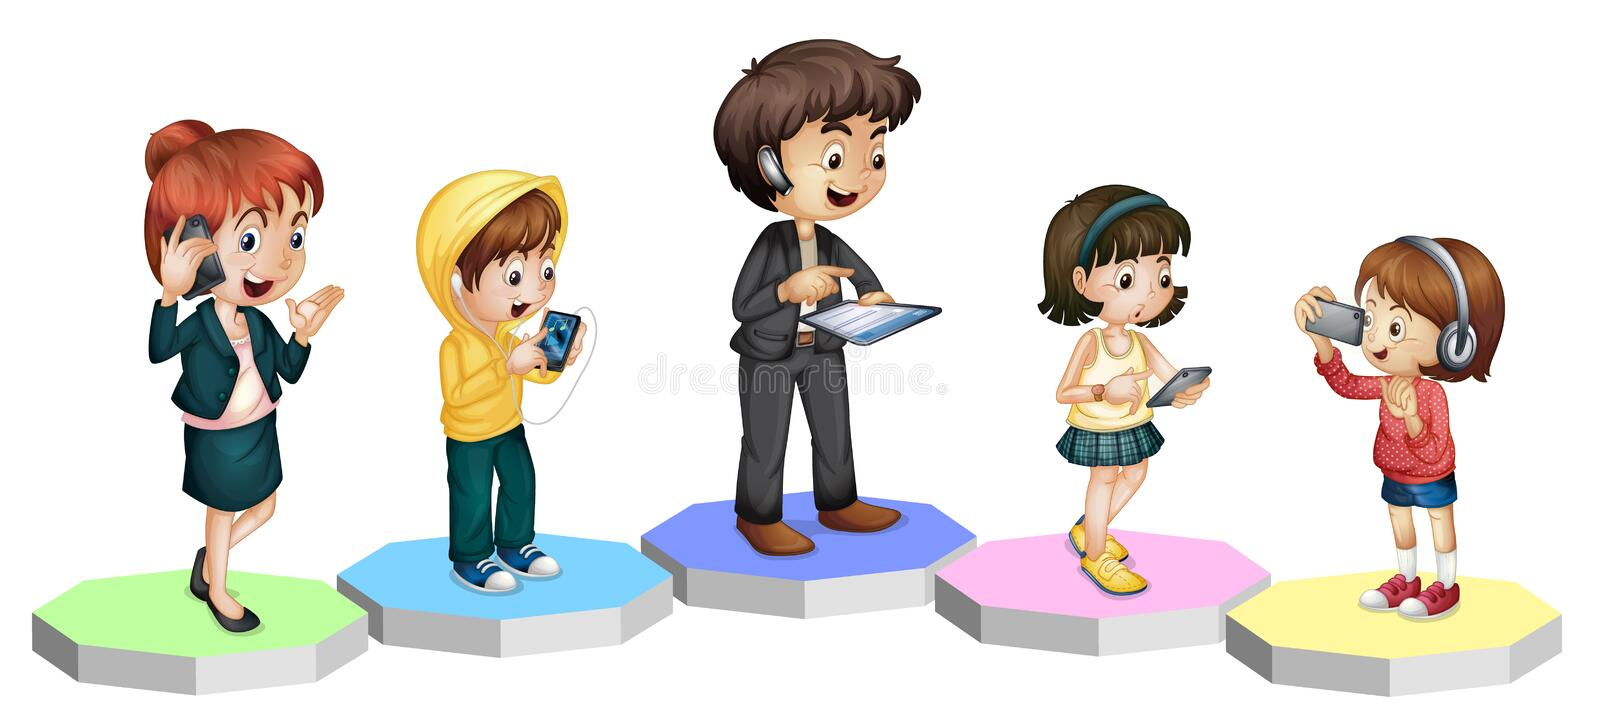 Technology Family. Illustration of modern technology in the family royalty free illustration